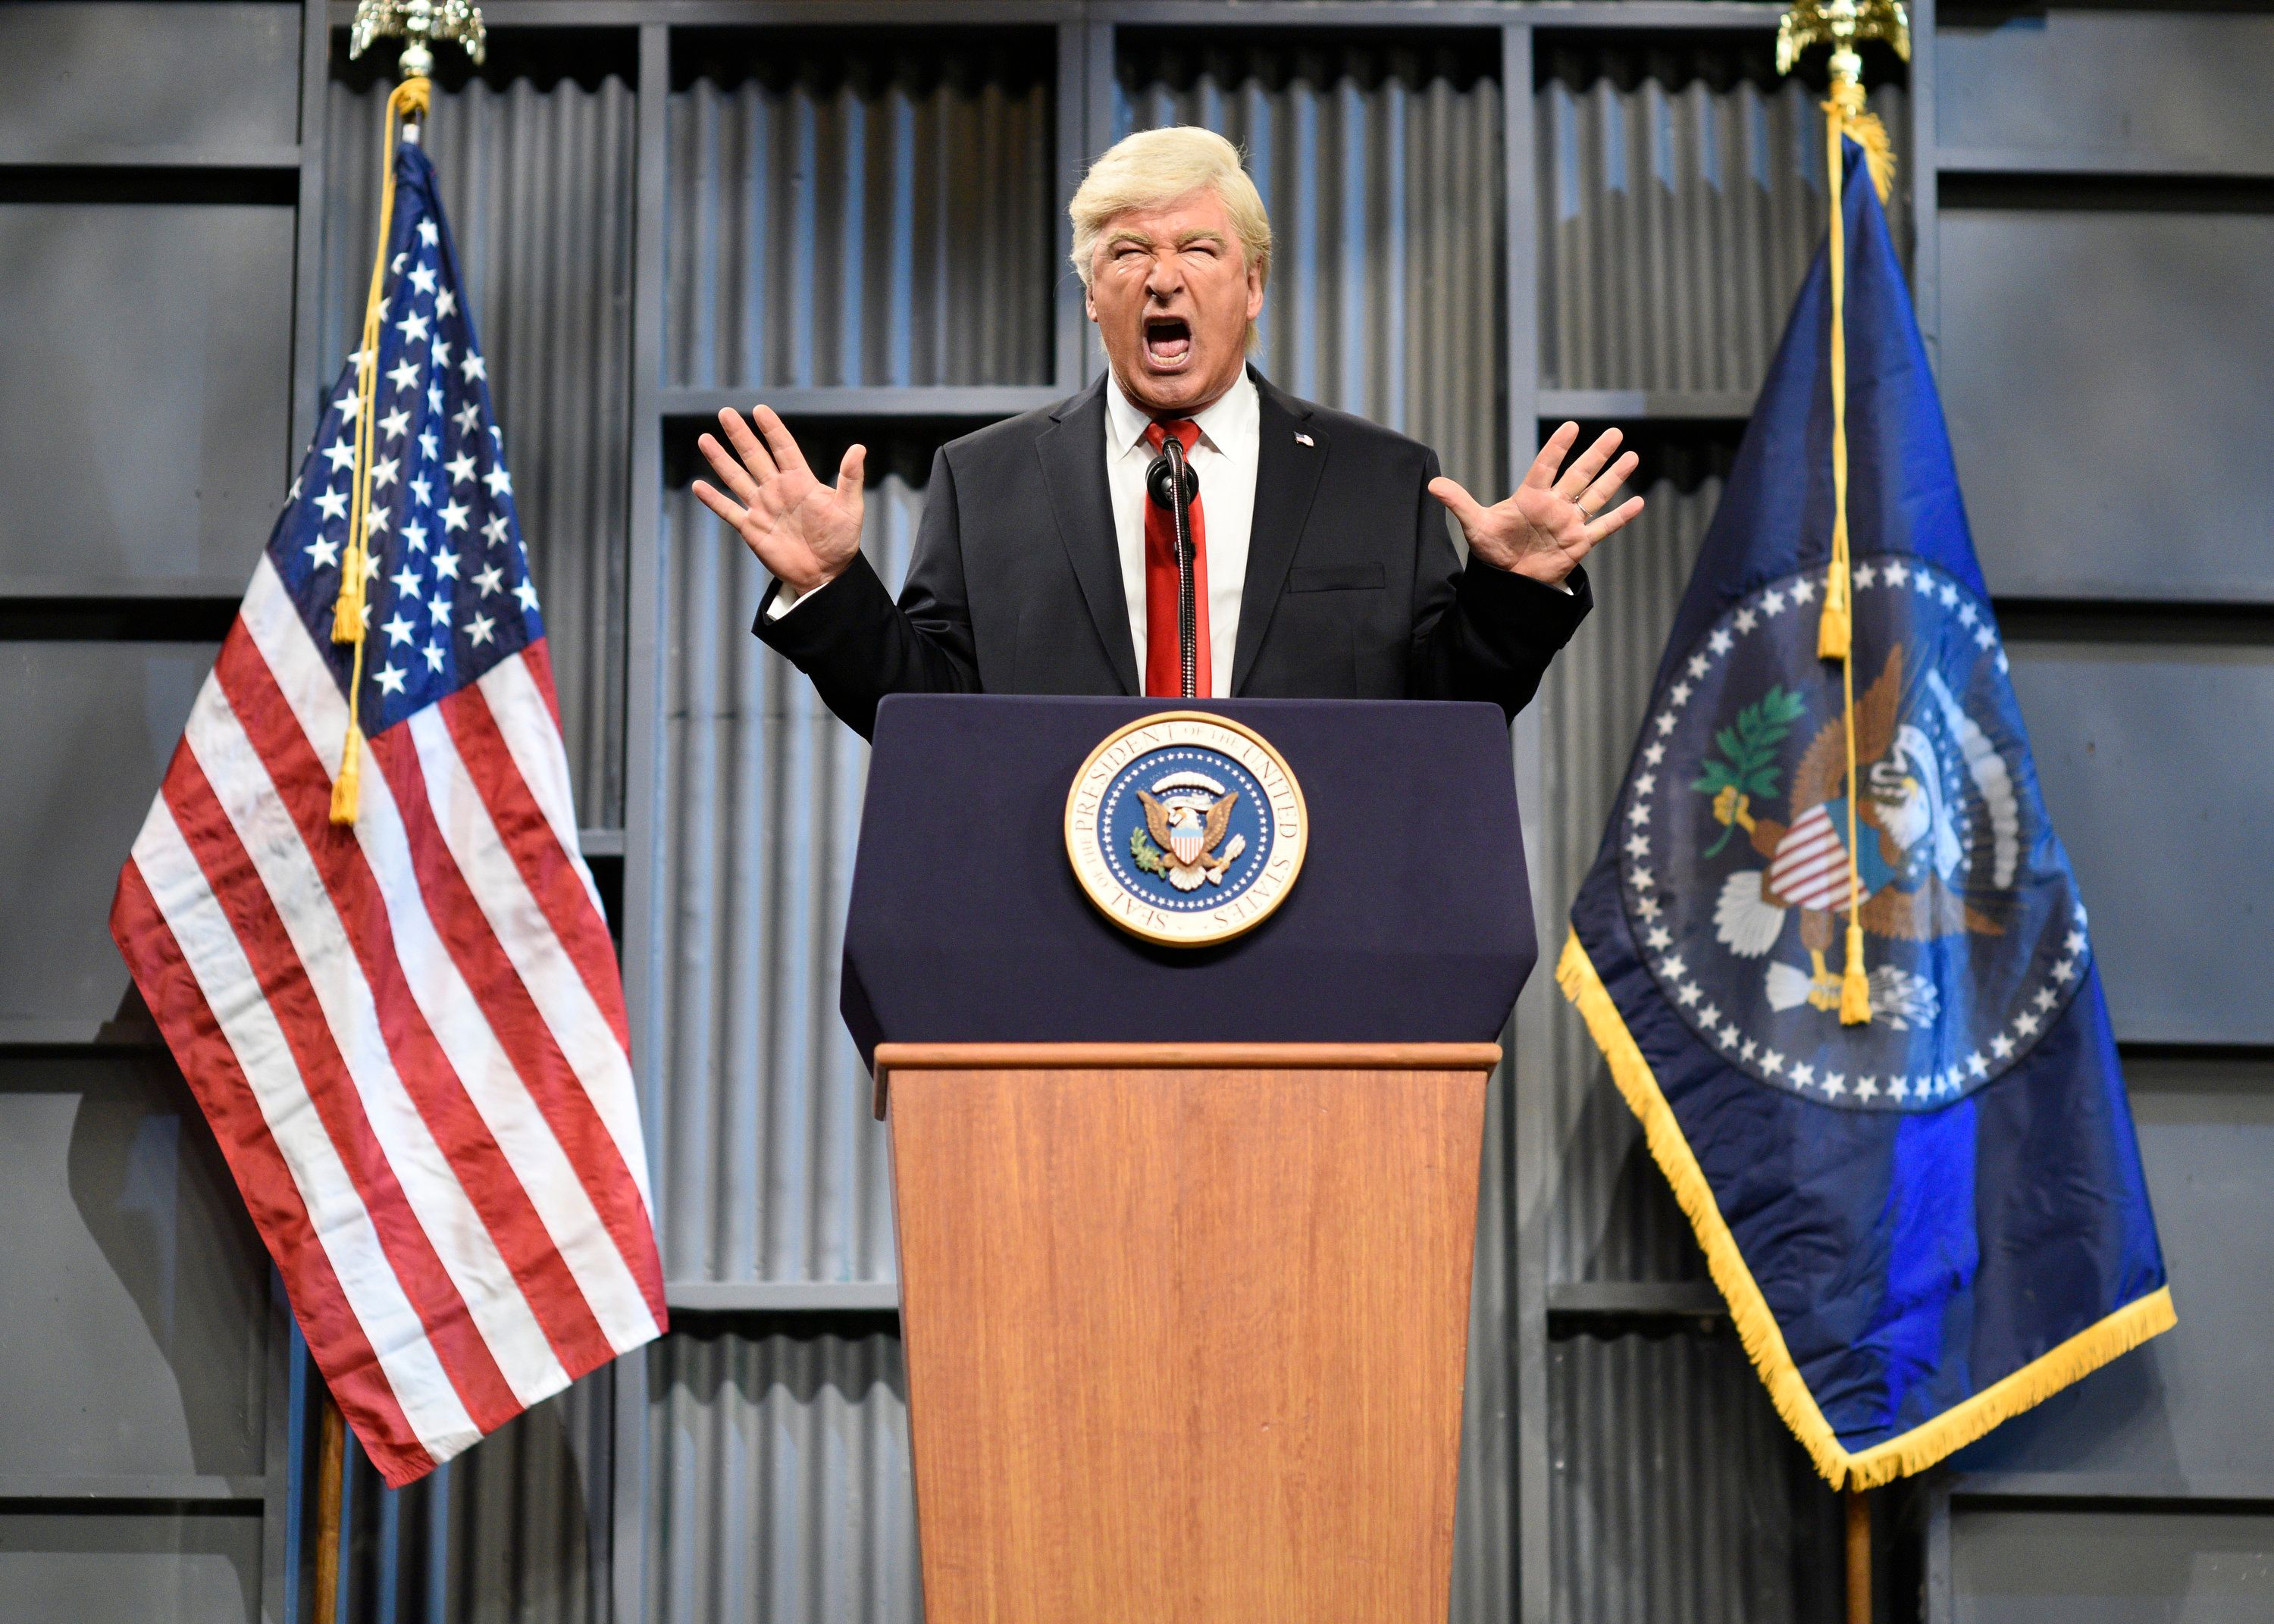 SATURDAY NIGHT LIVE -- 'Kumail Nanjiani' Episode 1728 -- Pictured: Alec Baldwin as President Donald J. Trump during 'Trucker Rally Cold Open' on Saturday, October 14, 2017 in Studio 8H -- (Photo by: Will Heath/NBC/NBCU Photo Bank via Getty Images)